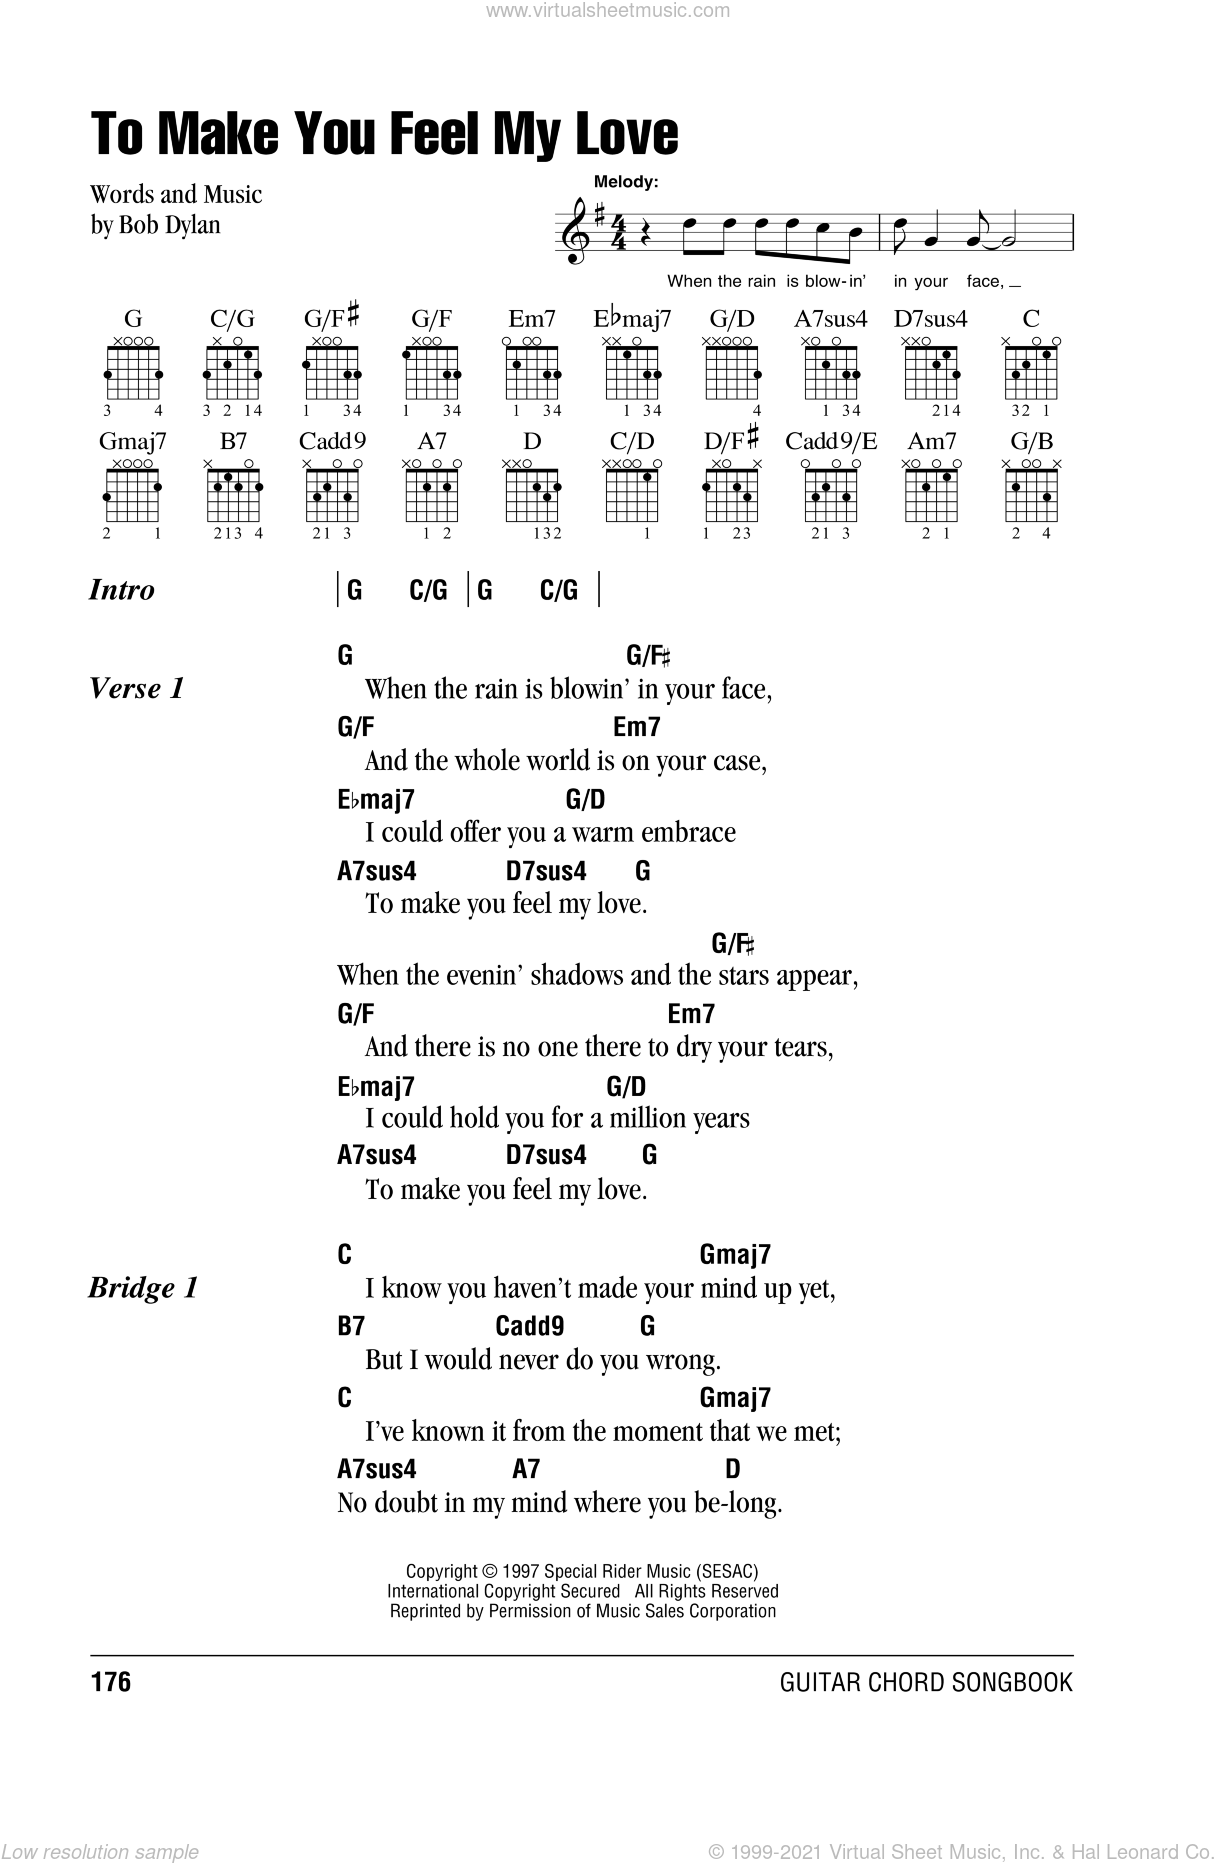 To Make You Feel My Love sheet music for guitar (chords) by Billy Joel and Bob Dylan, intermediate skill level